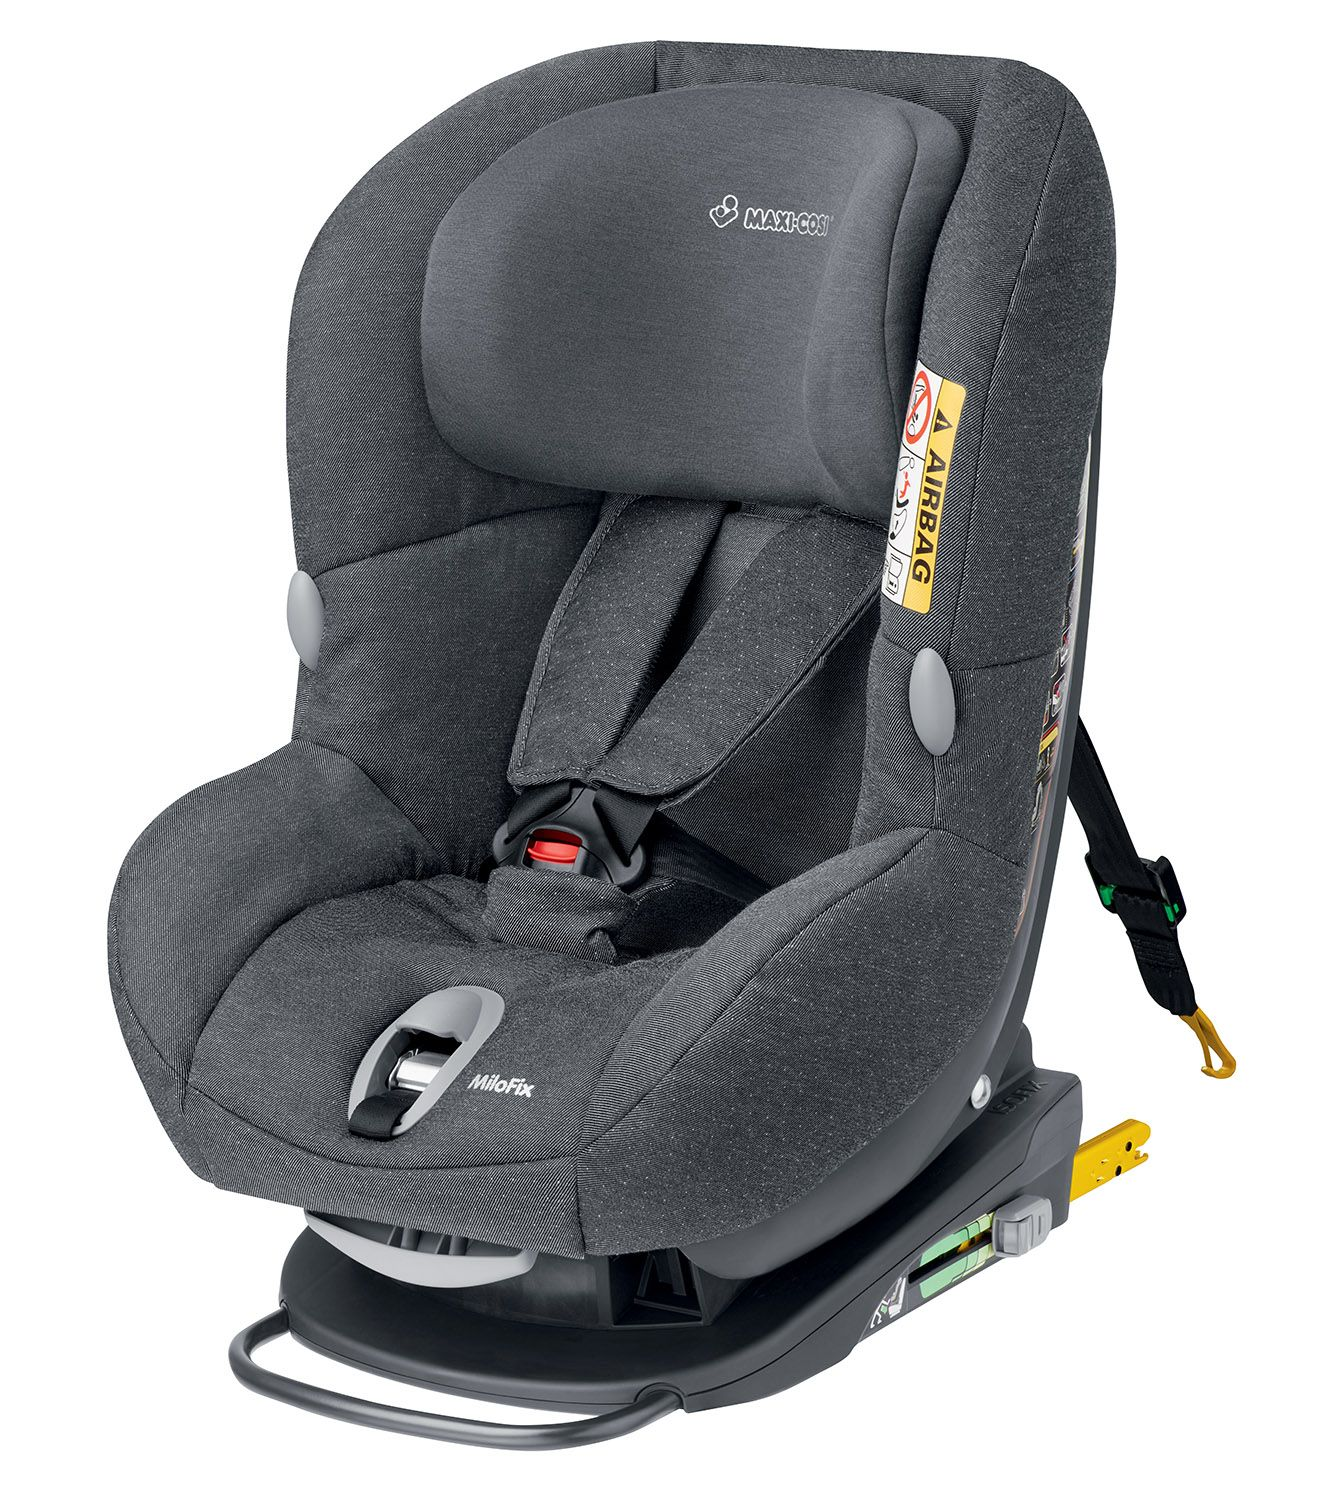 Child Car Seat Restrictions